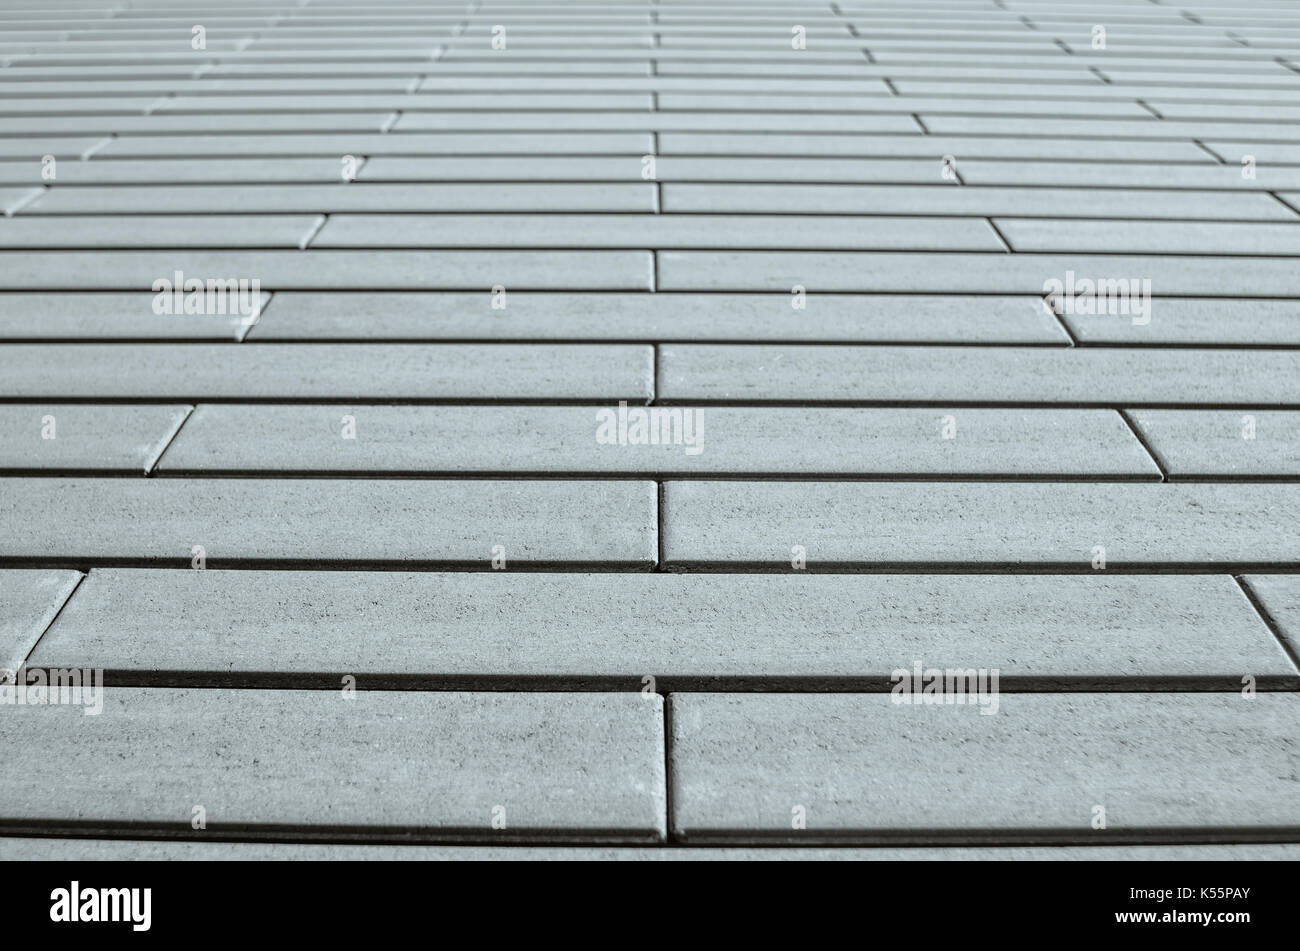 Gray brick wall in perspective. Template for design. - Stock Image